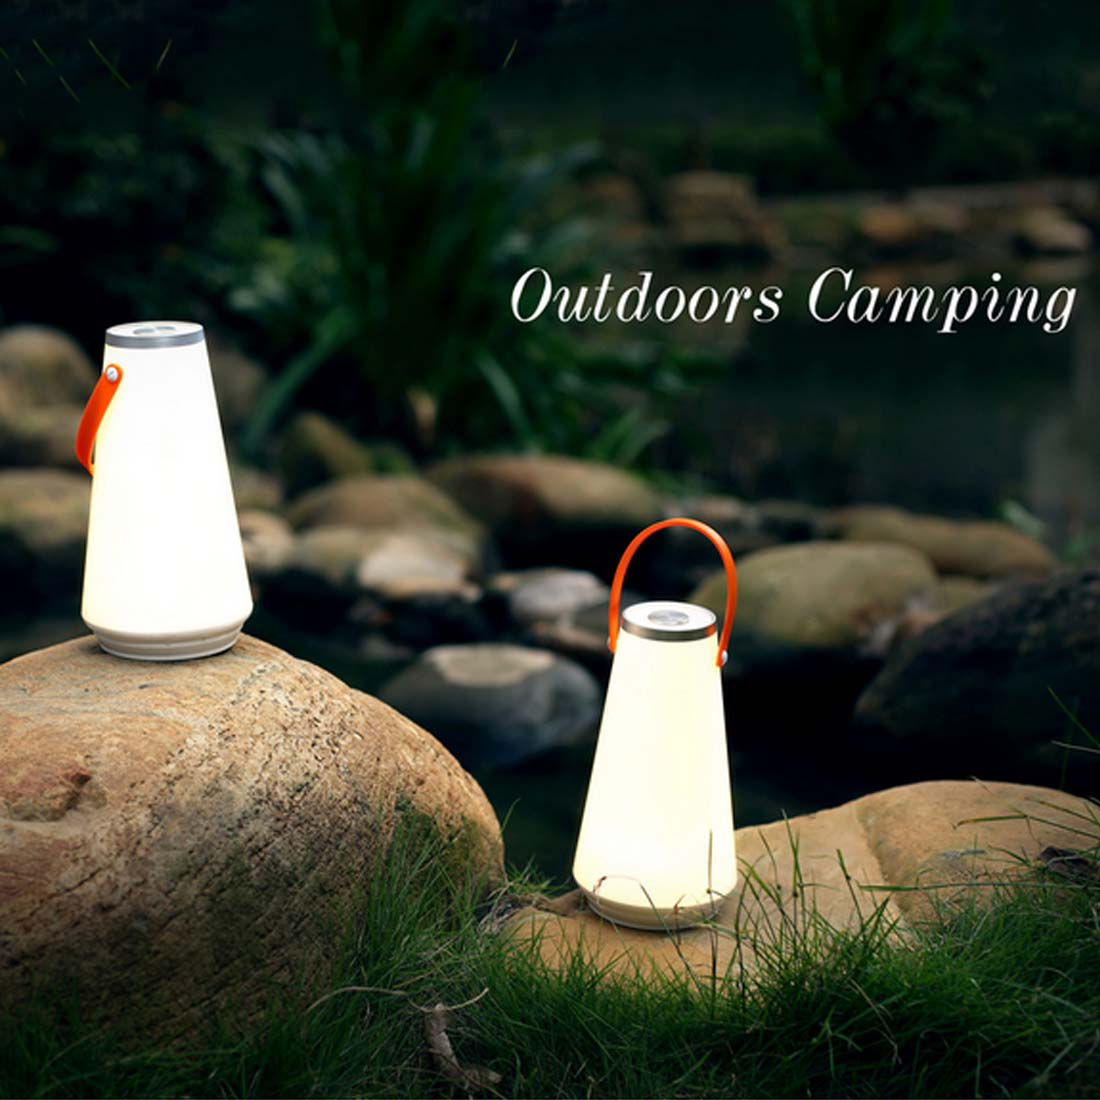 1Pc Wireless LED Home Night Light Table Lamp USB Rechargeable Touch Switch Portable Lanterns Outdoor Camping Emergency Light1Pc Wireless LED Home Night Light Table Lamp USB Rechargeable Touch Switch Portable Lanterns Outdoor Camping Emergency Light